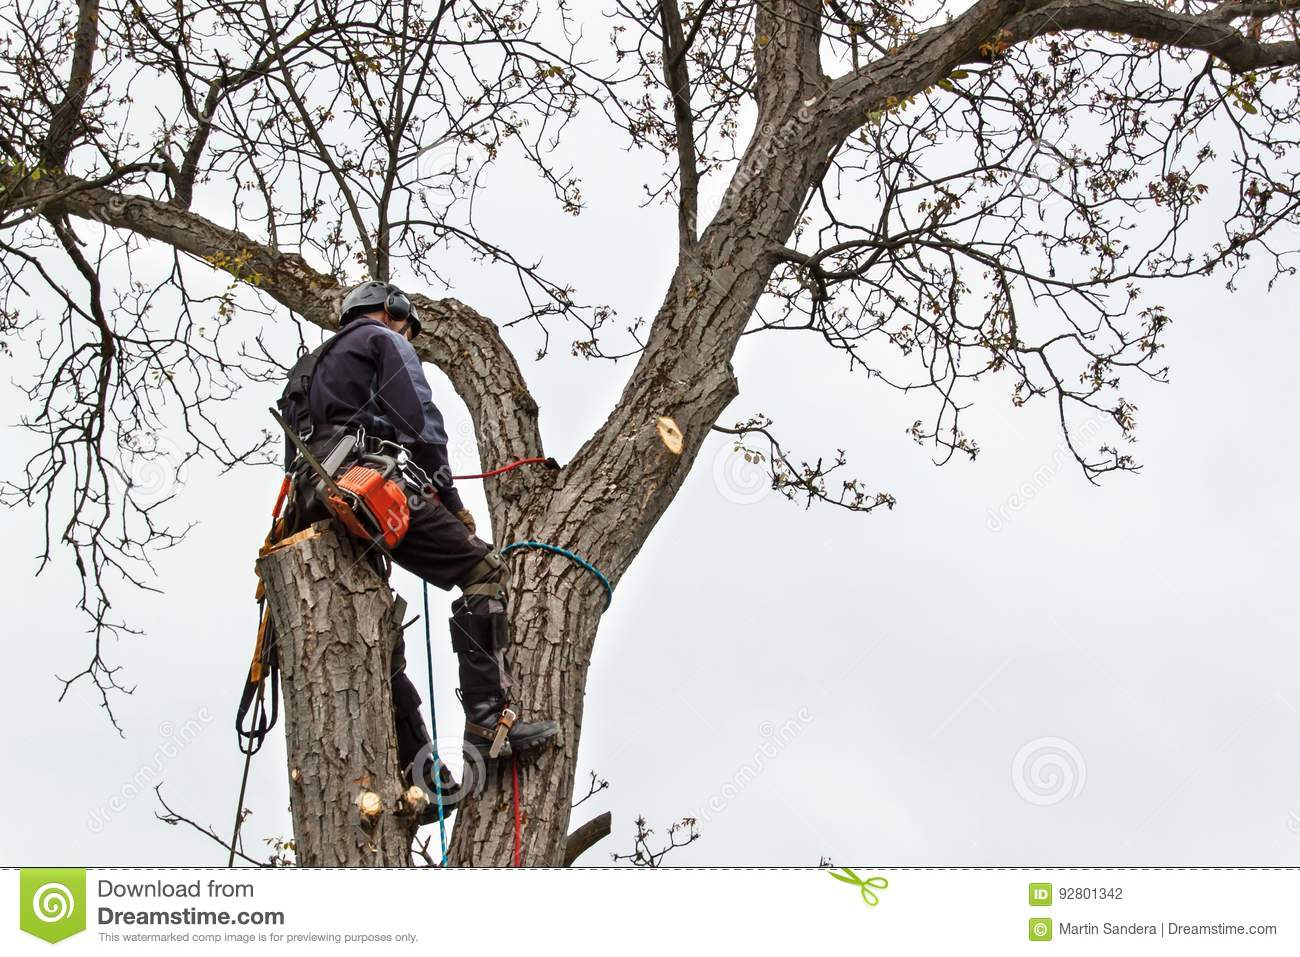 Arborist using a chainsaw to cut a walnut tree. Lumberjack with saw and harness pruning a tree.